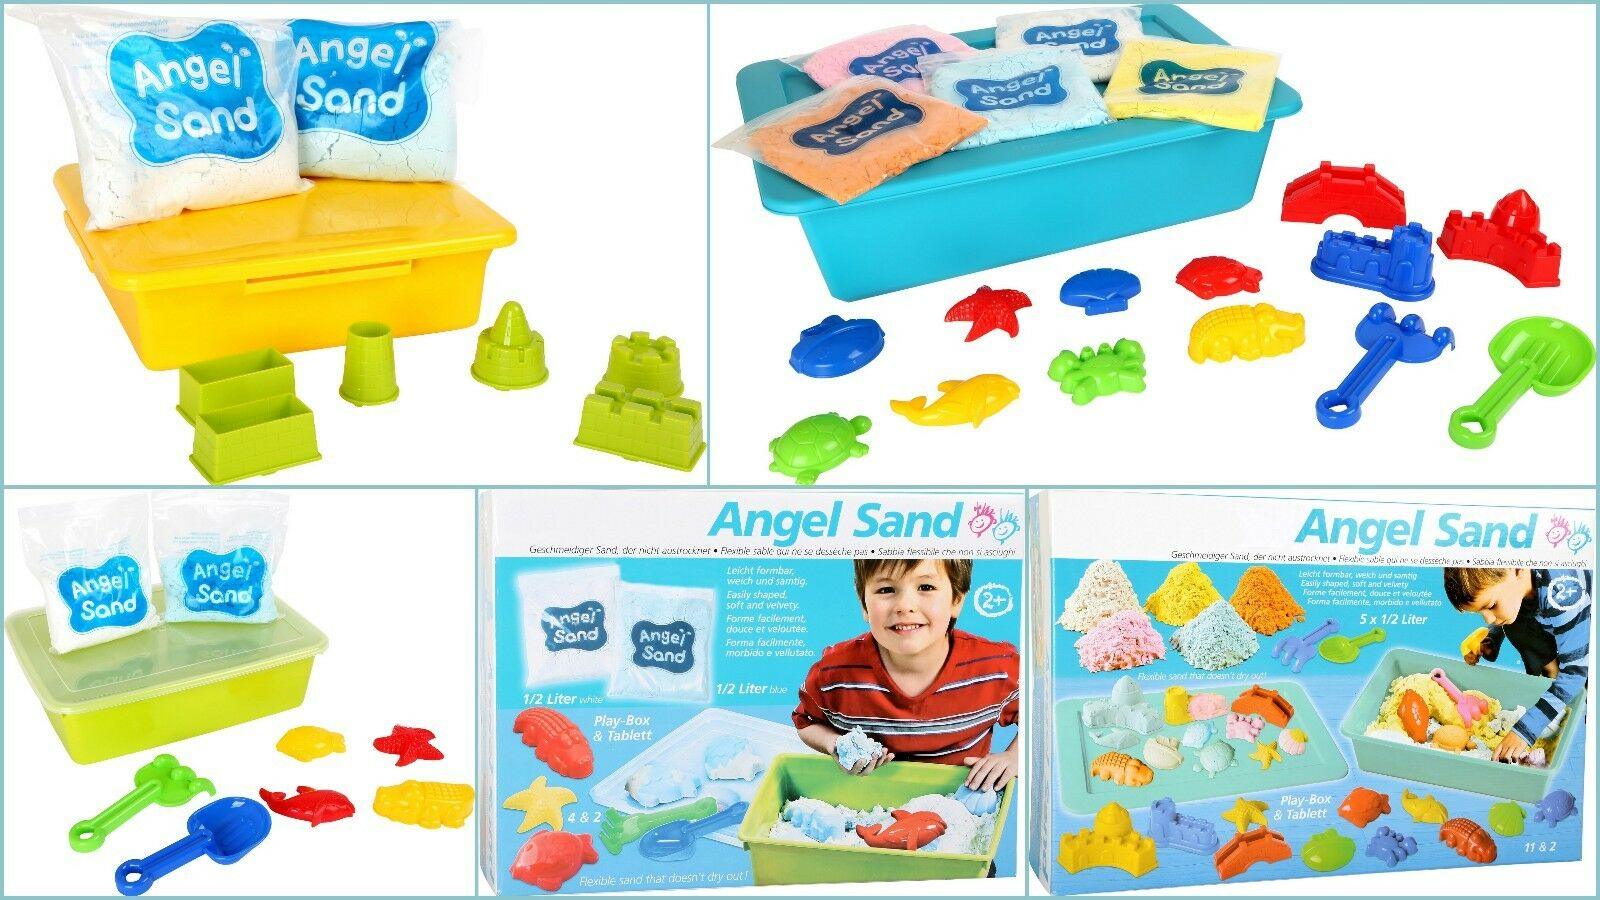 Kinetic Sand Clean Soft Dry Sand Sensory Activity Occupational Therapy Moldable